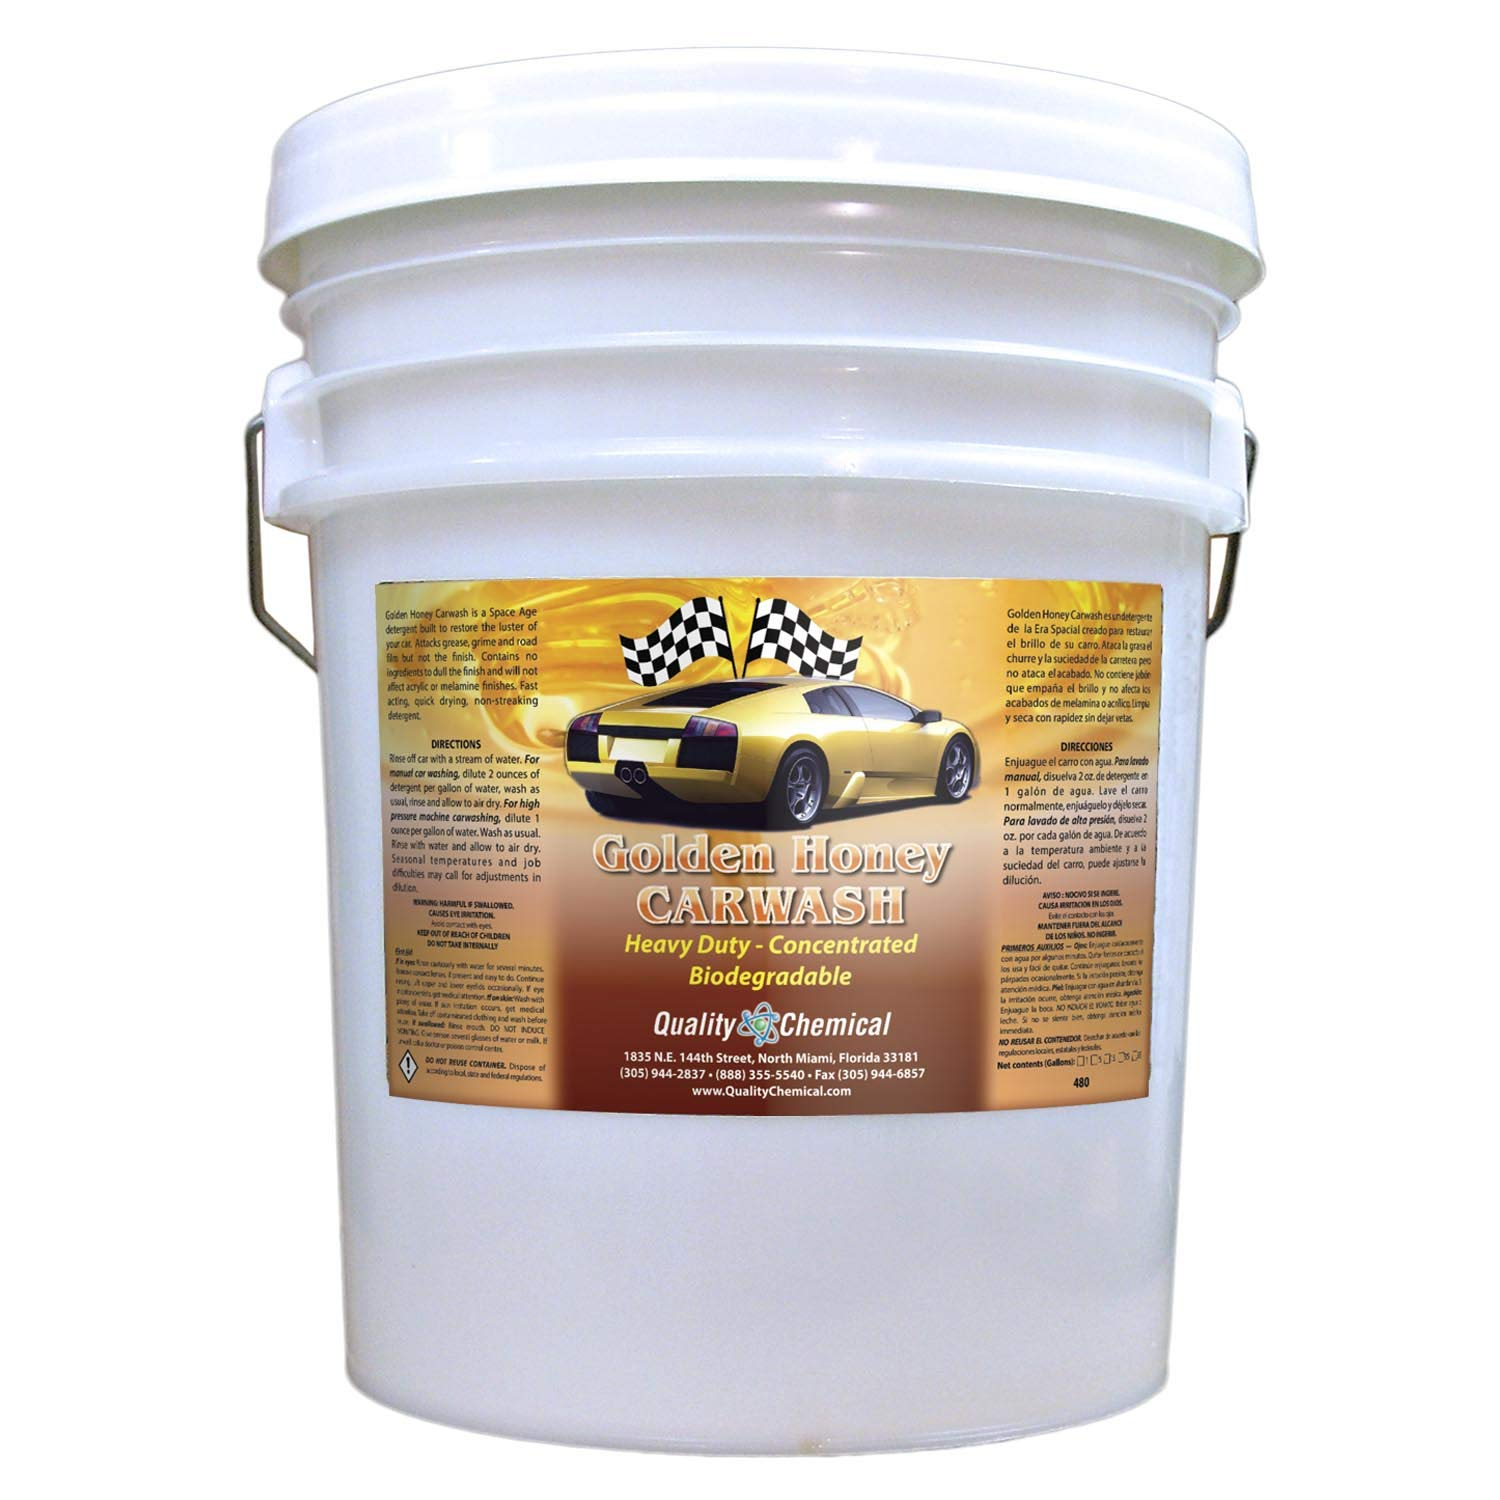 Amazon.com: Quality Chemical Golden Honey Car Wash - A highly concentrated, super foaming, auto wash.-5 gallon pail: Automotive